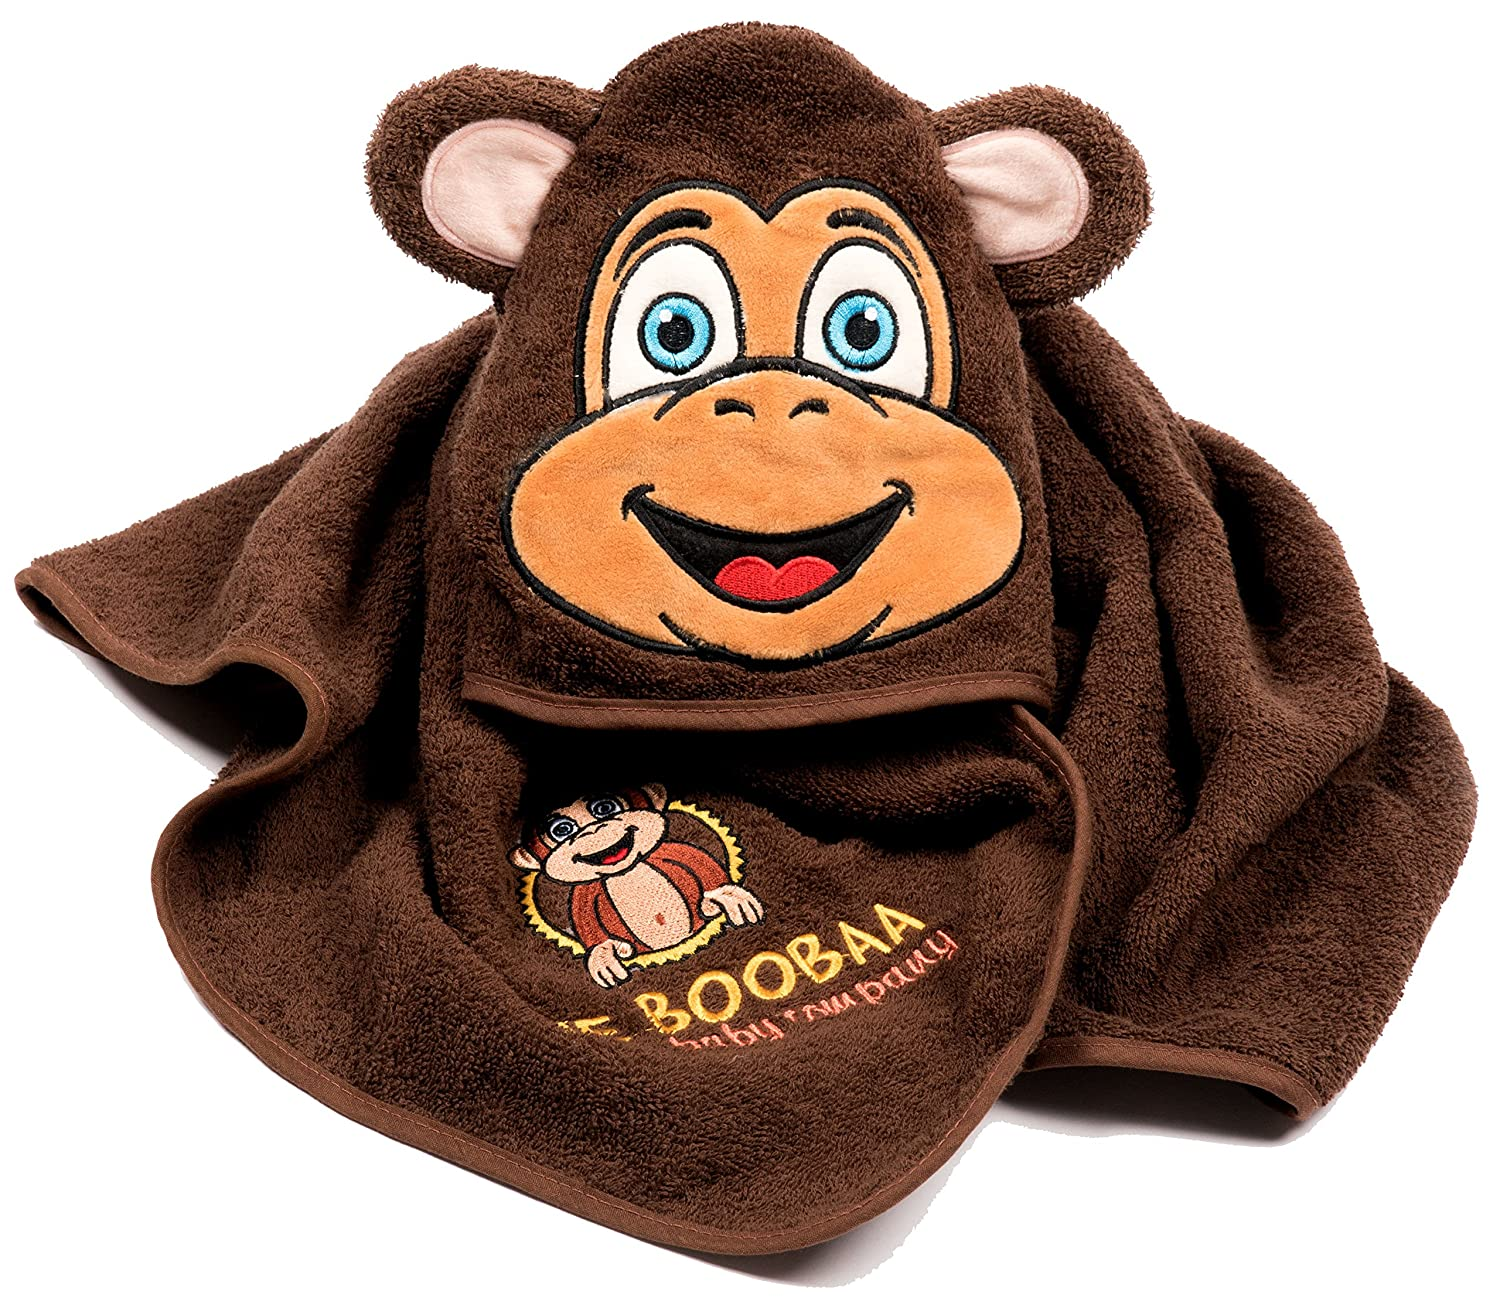 BooBaa Baby Hooded Monkey Towel The BooBaa Baby Company